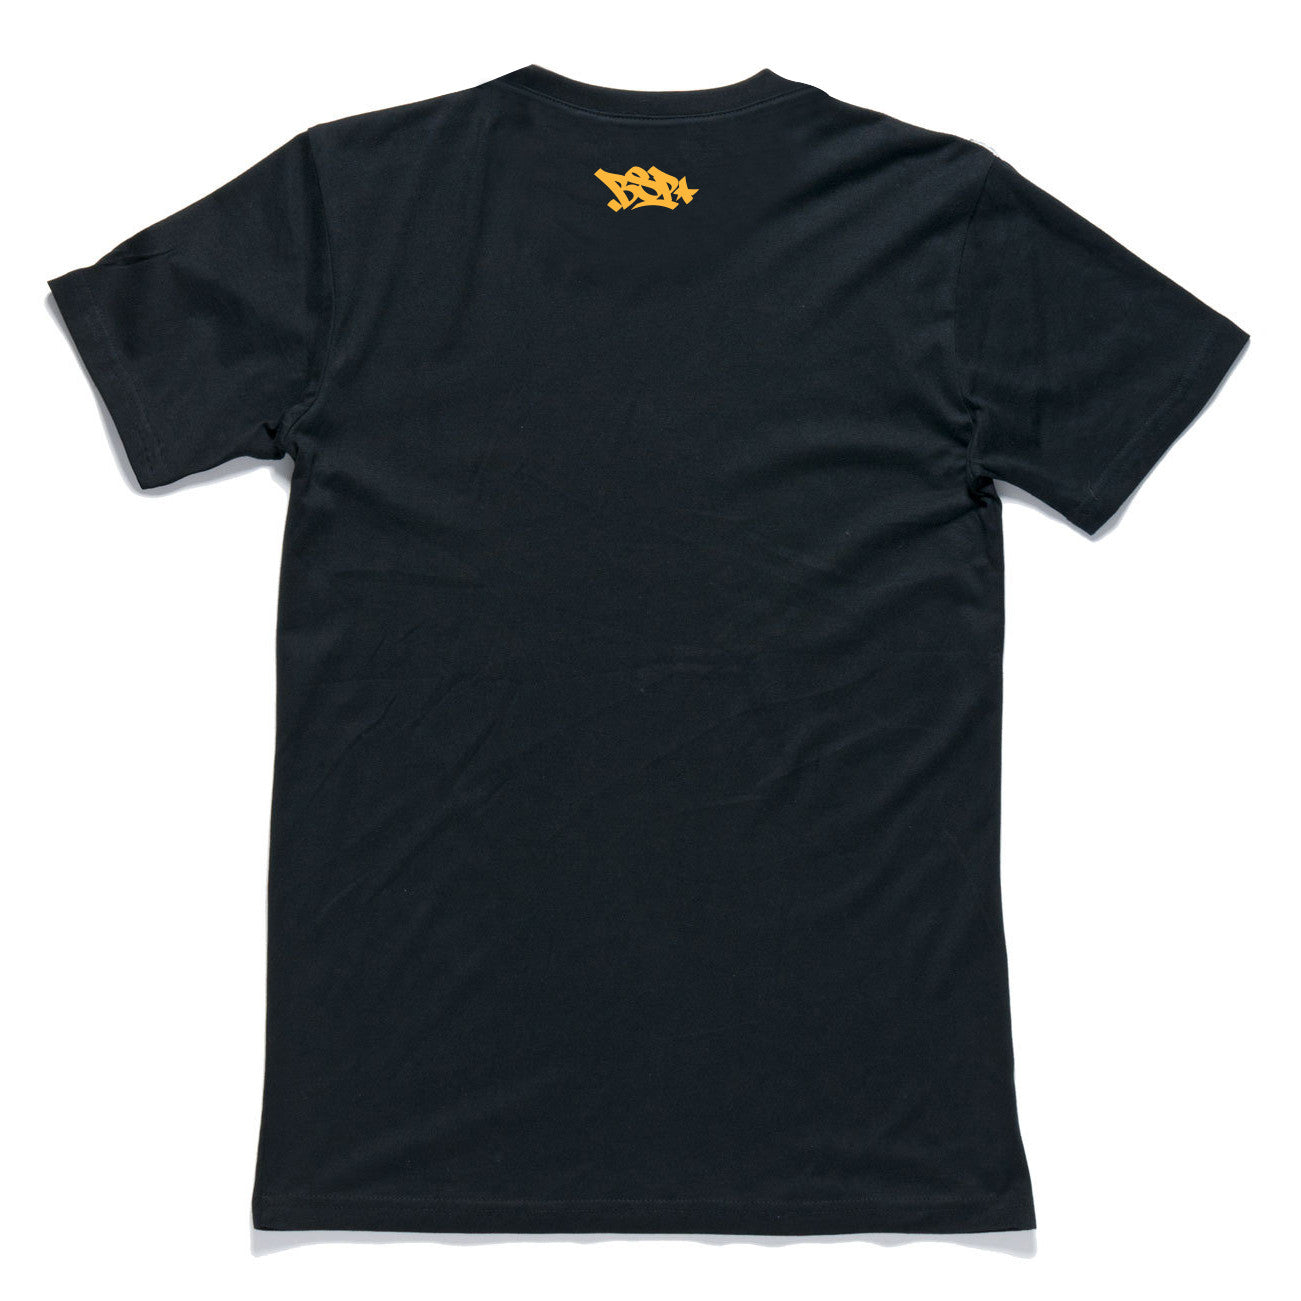 CityRail Drip tee front